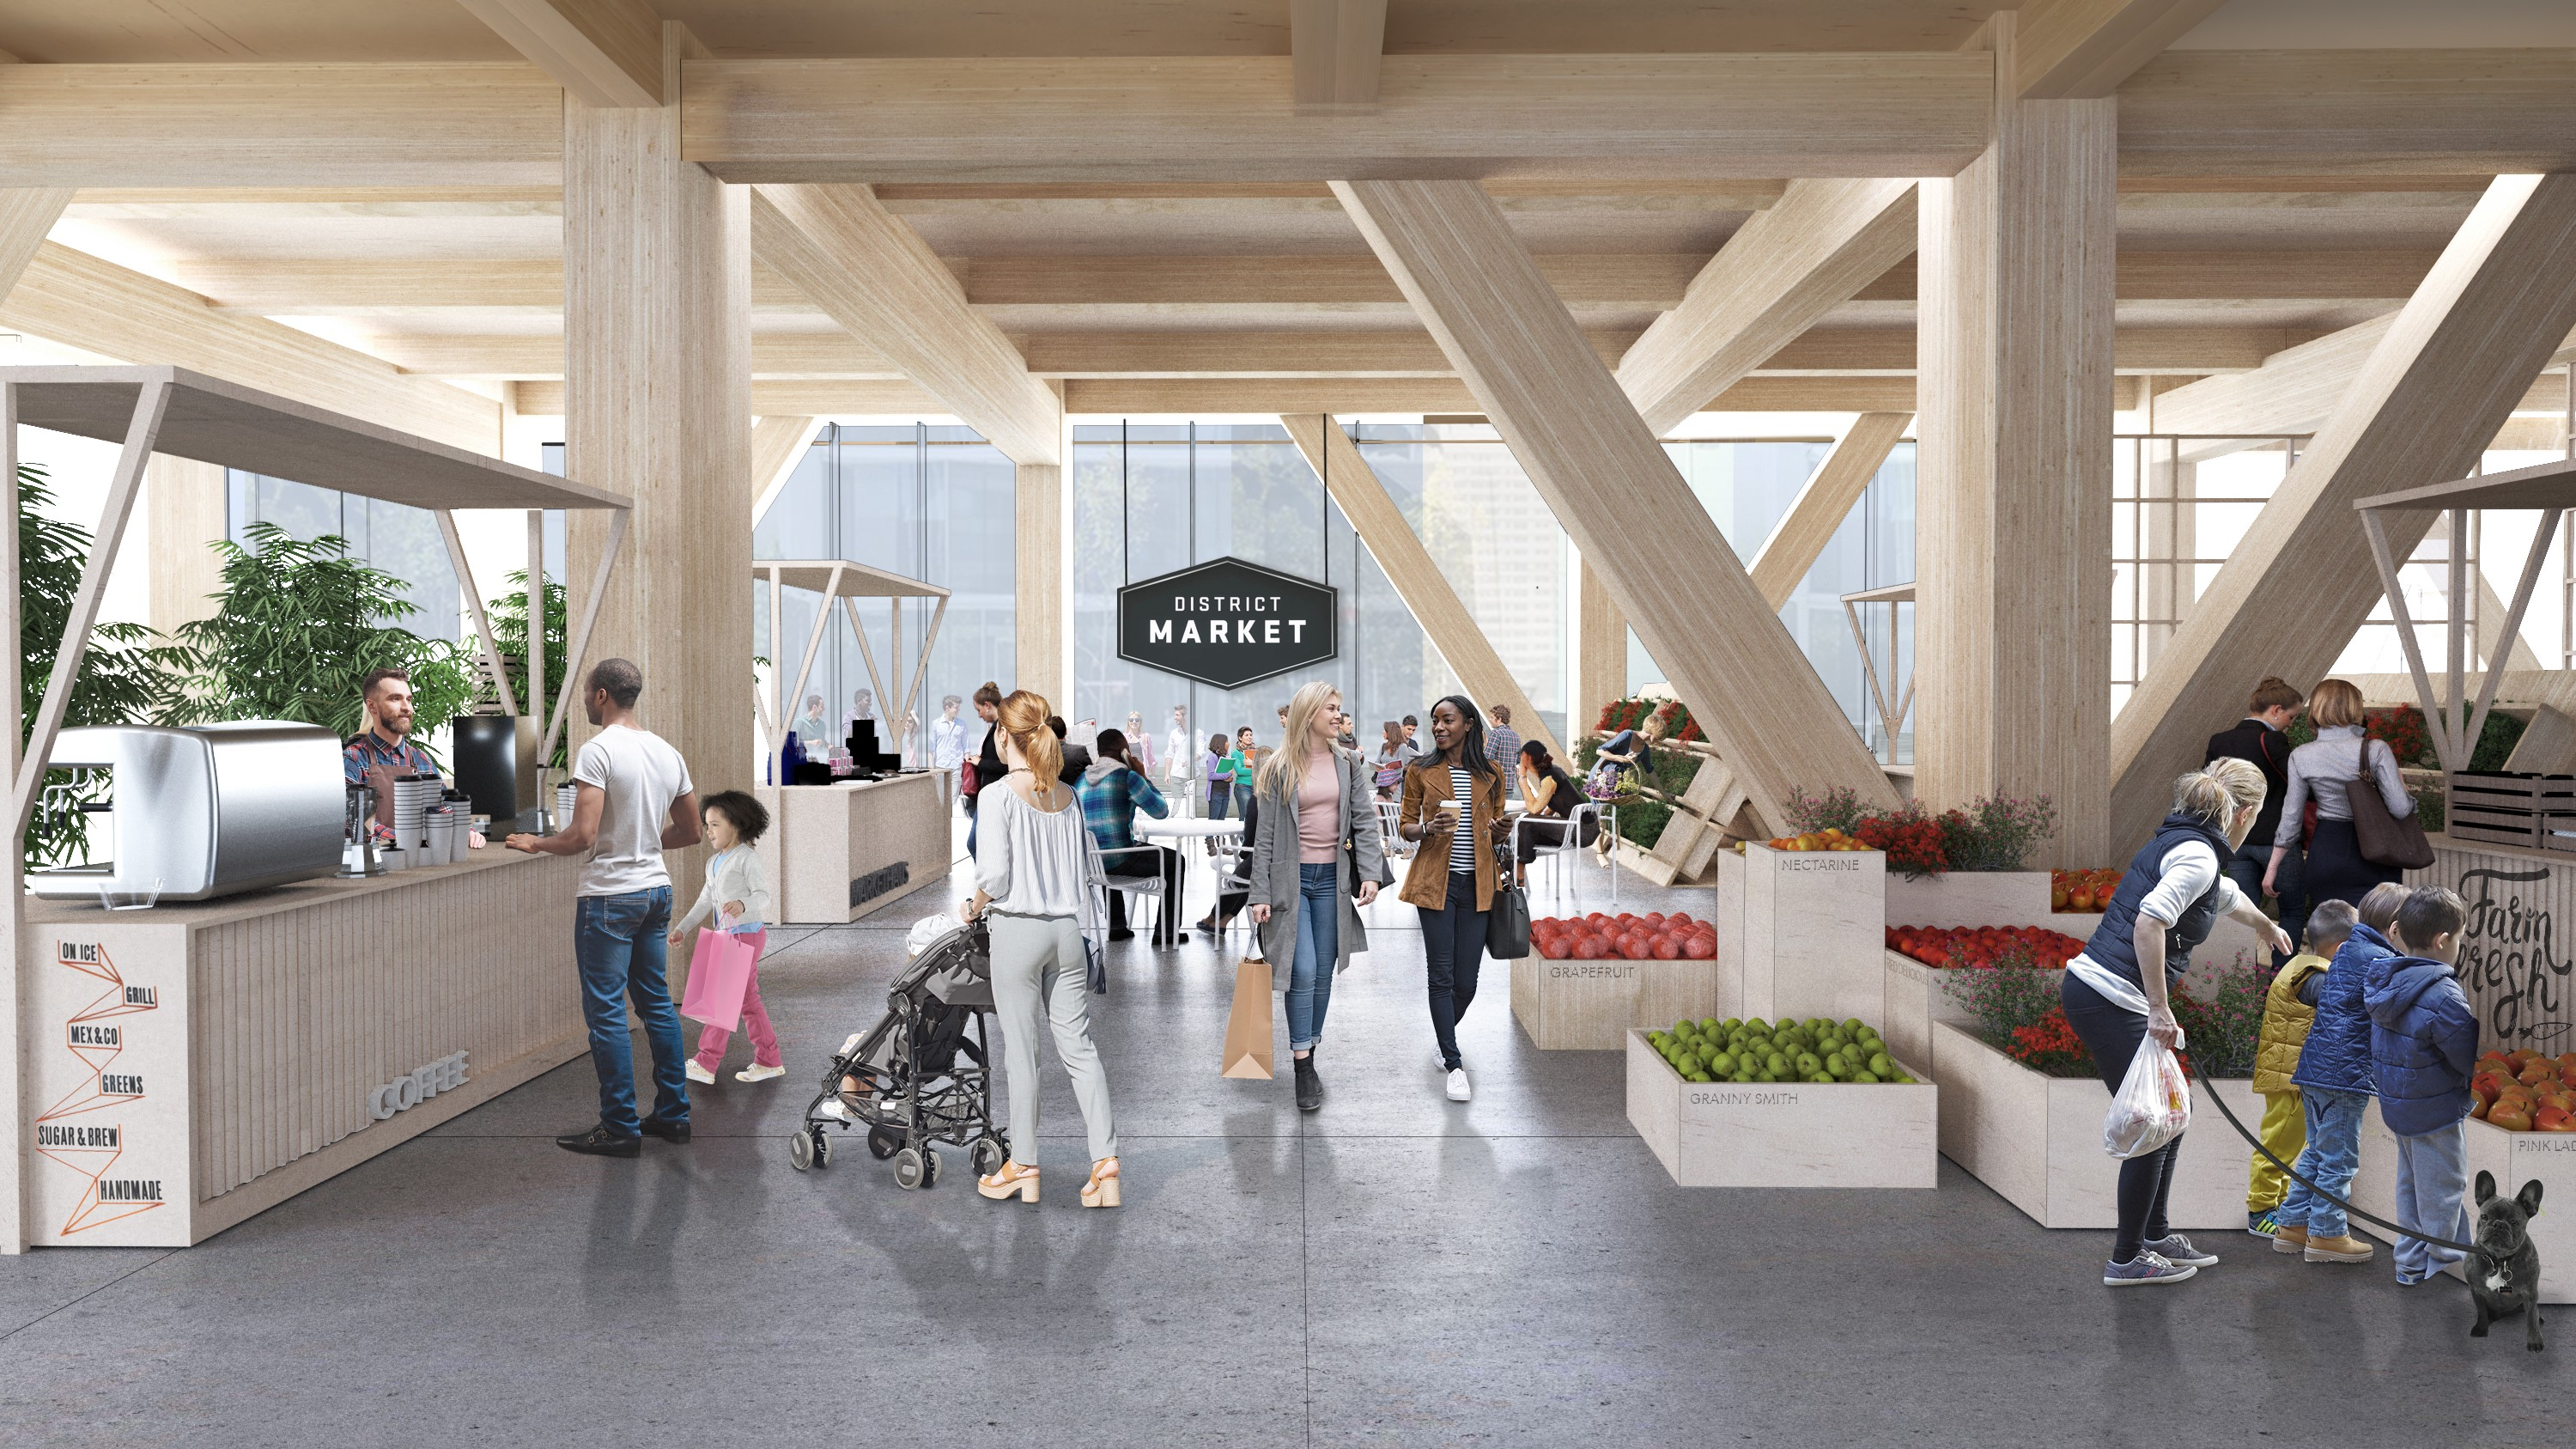 Architectural rendering of an airy, wood-filled space holding an indoor market. People walk and shop.